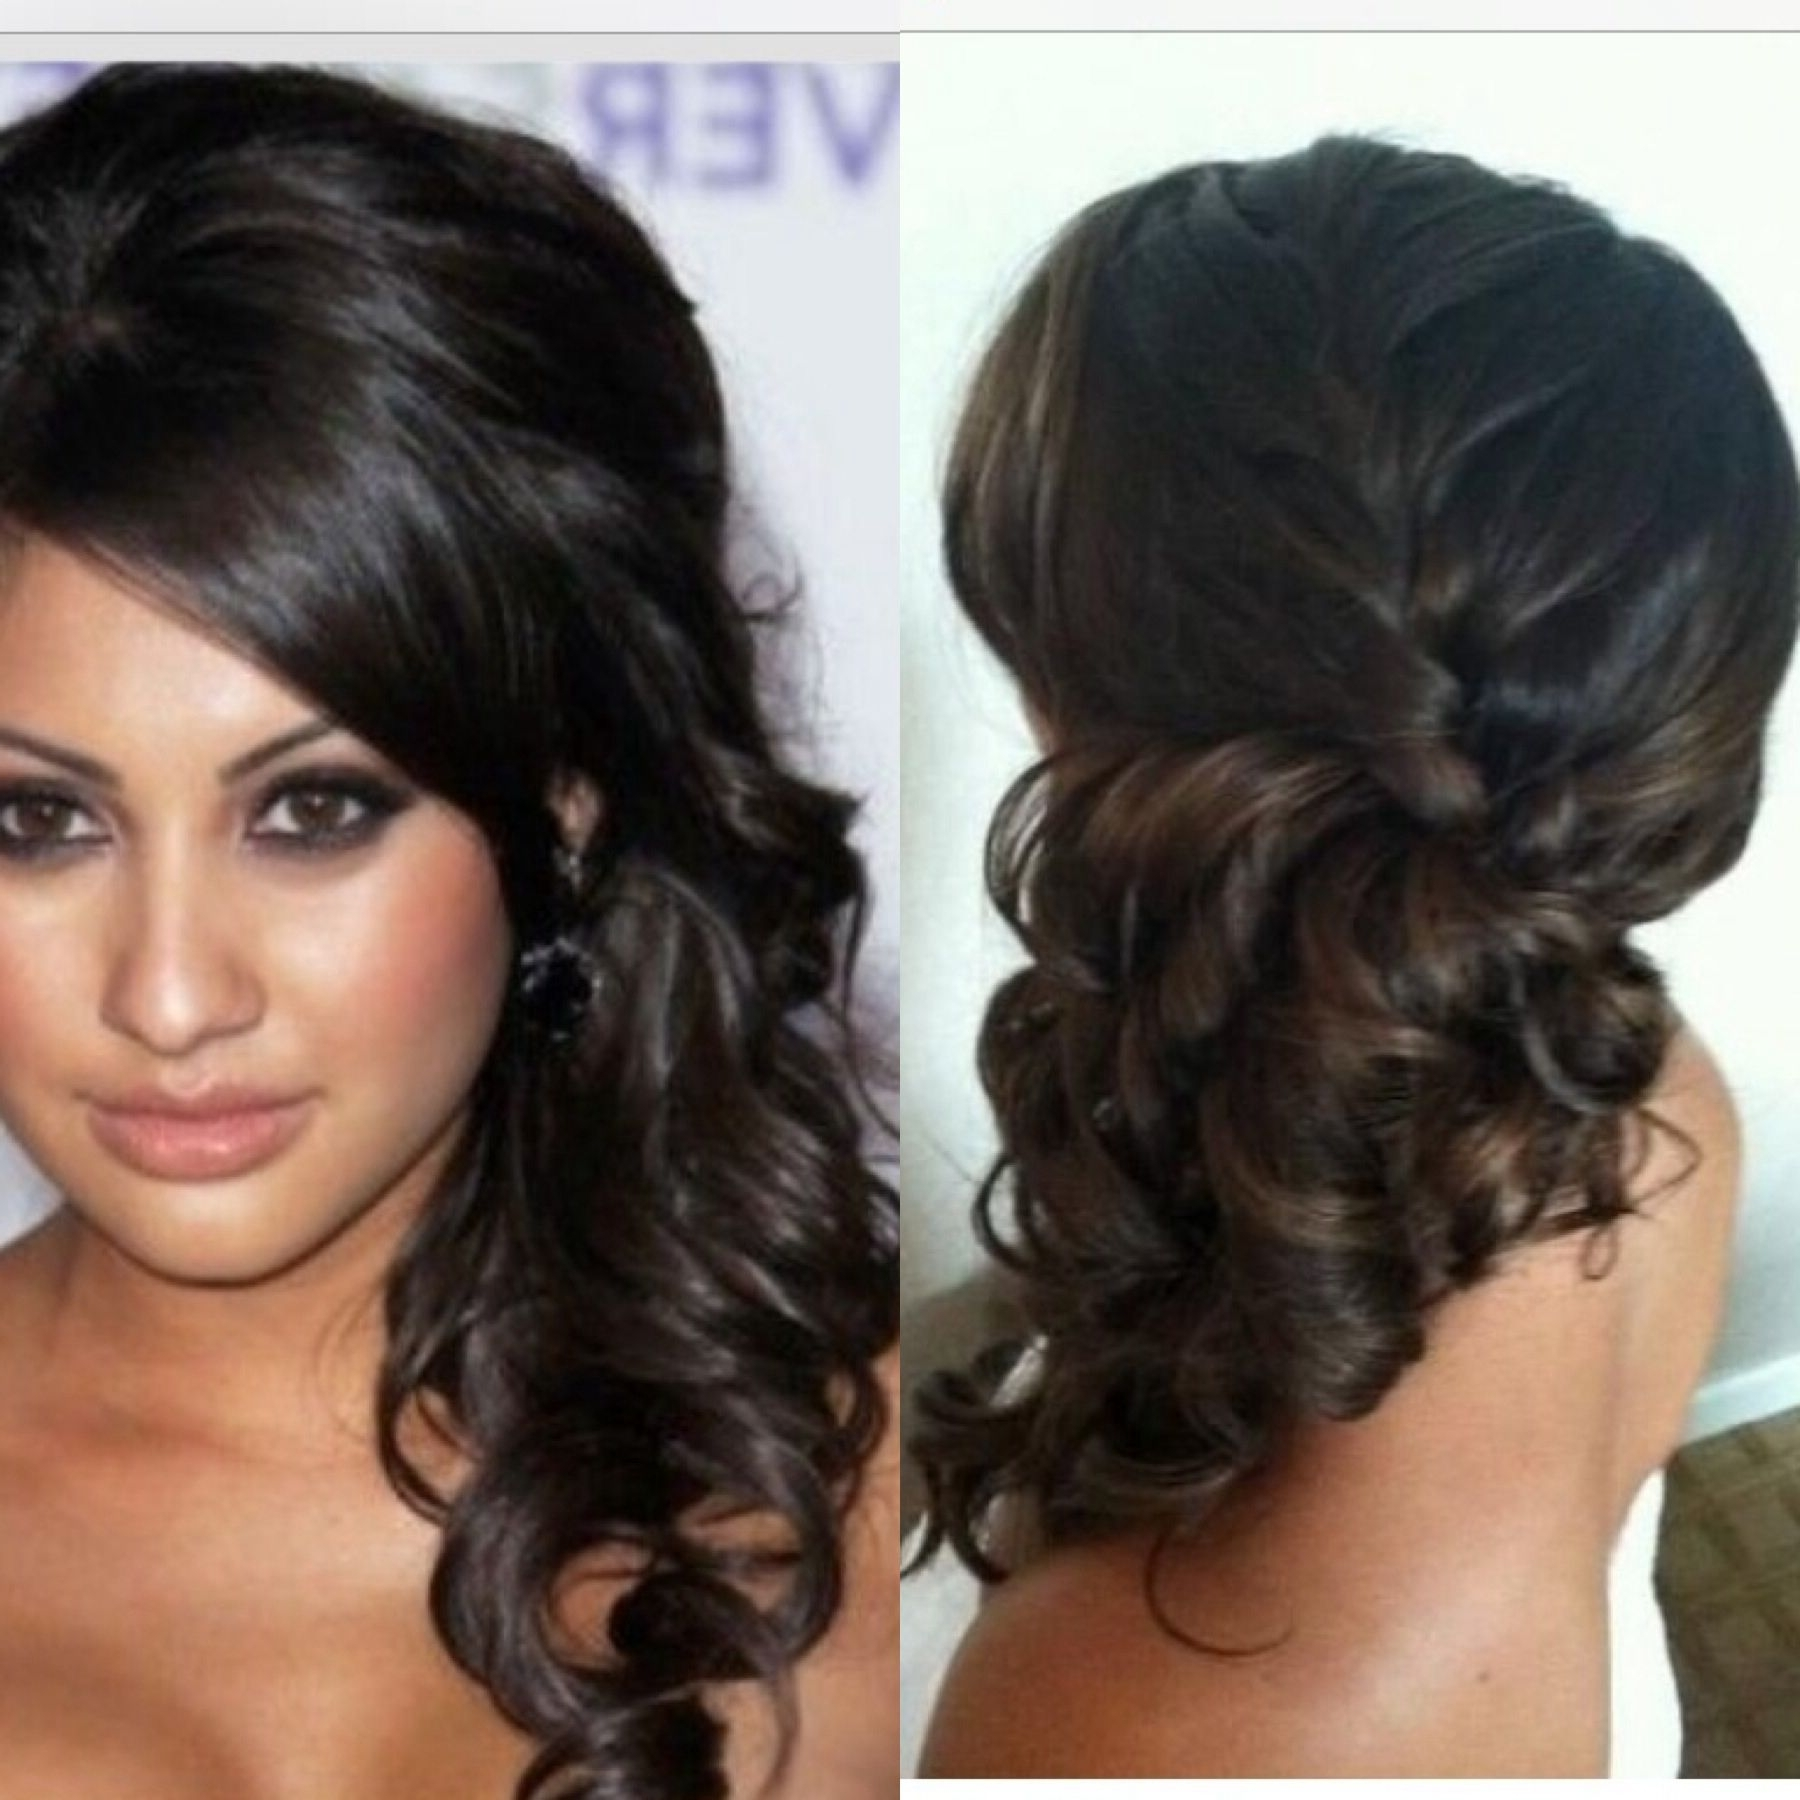 Newest Wedding Hairstyles To The Side With Curls In Bridesmaid Hair. Up Do (View 10 of 15)